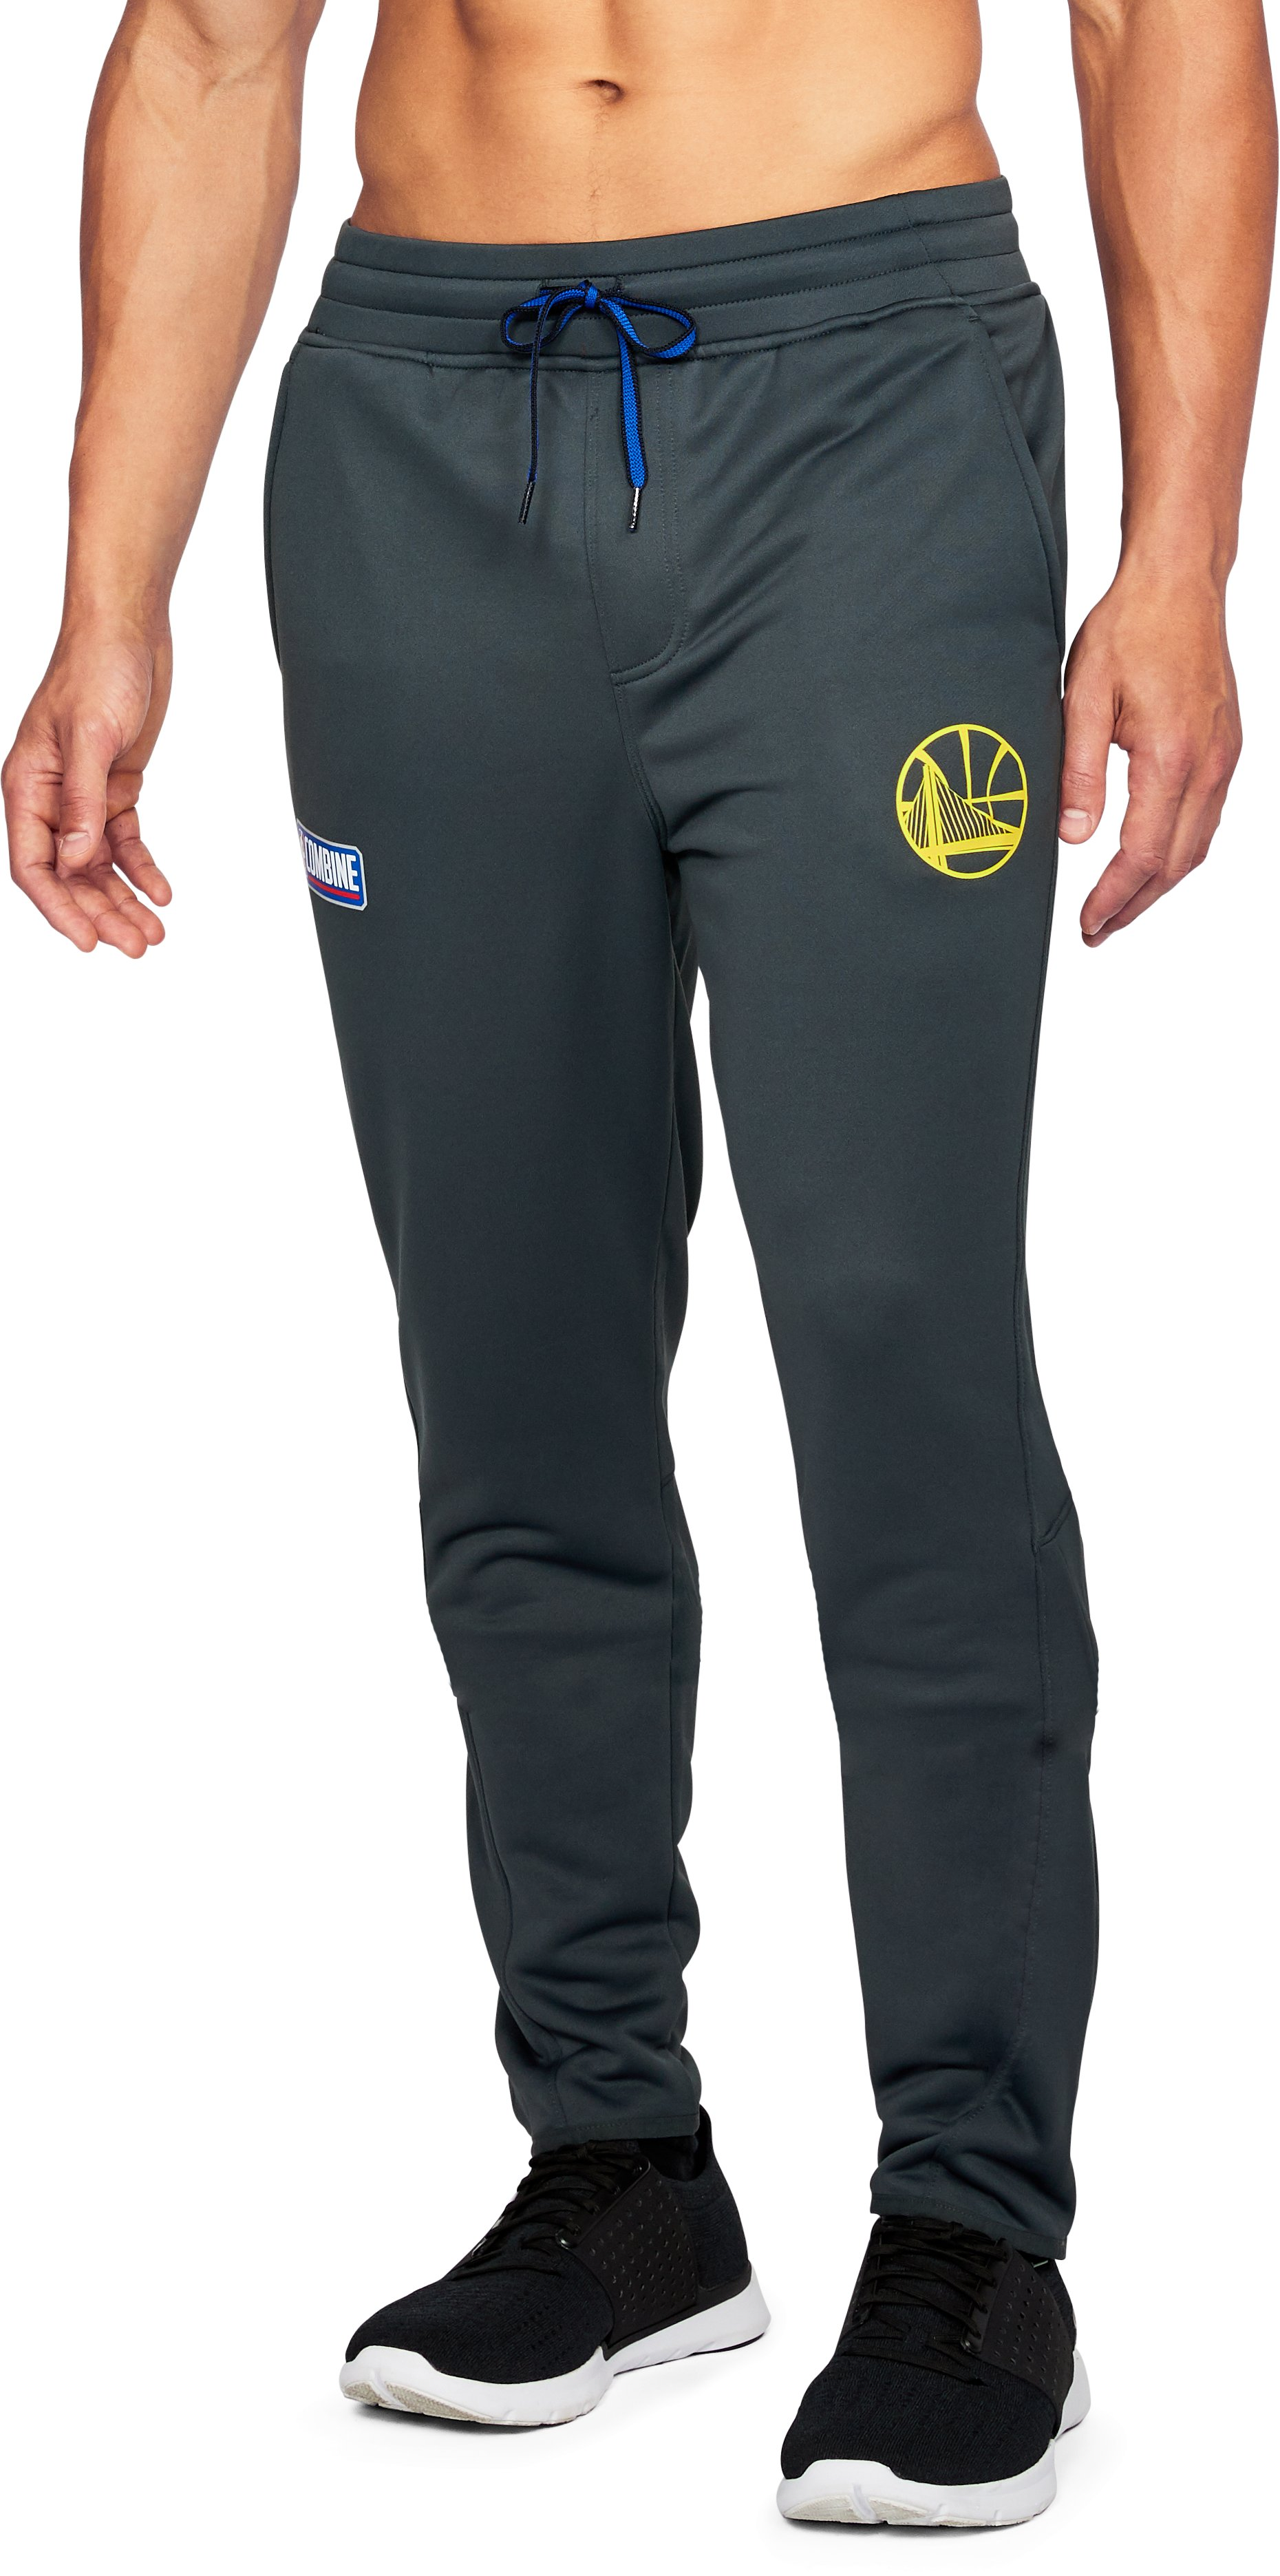 Men's NBA Combine UA Baseline Tapered Pants, NBA_GOLDEN STATE WARRIORS_STEALTH GRAY, undefined